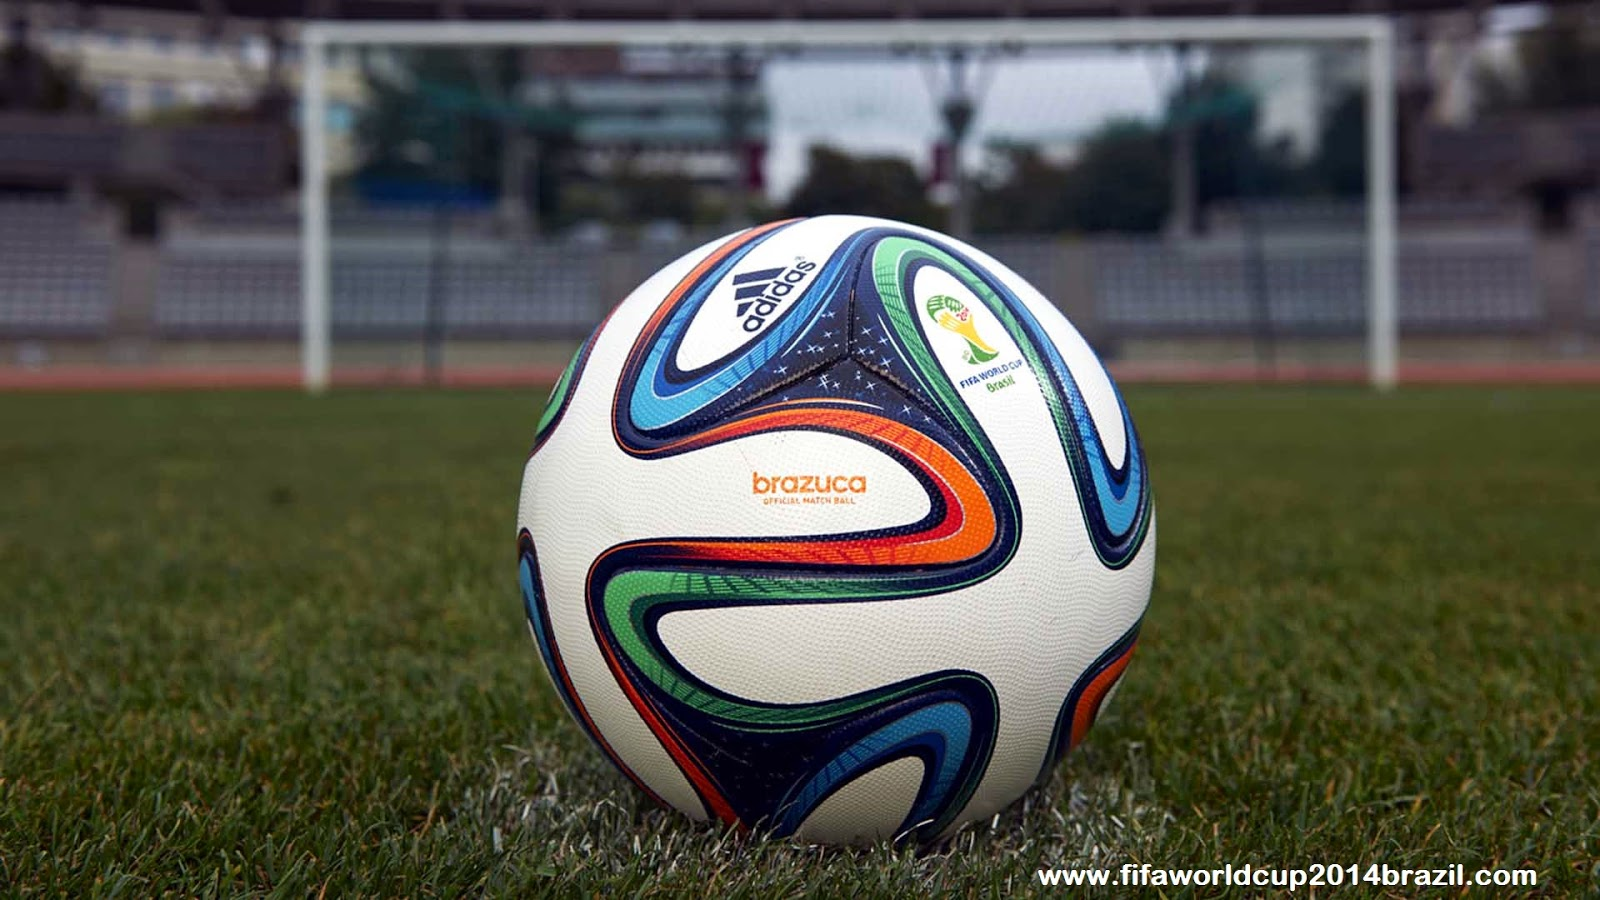 FIFA World Cup 2014 Brazuca Ball HD Wallpapers